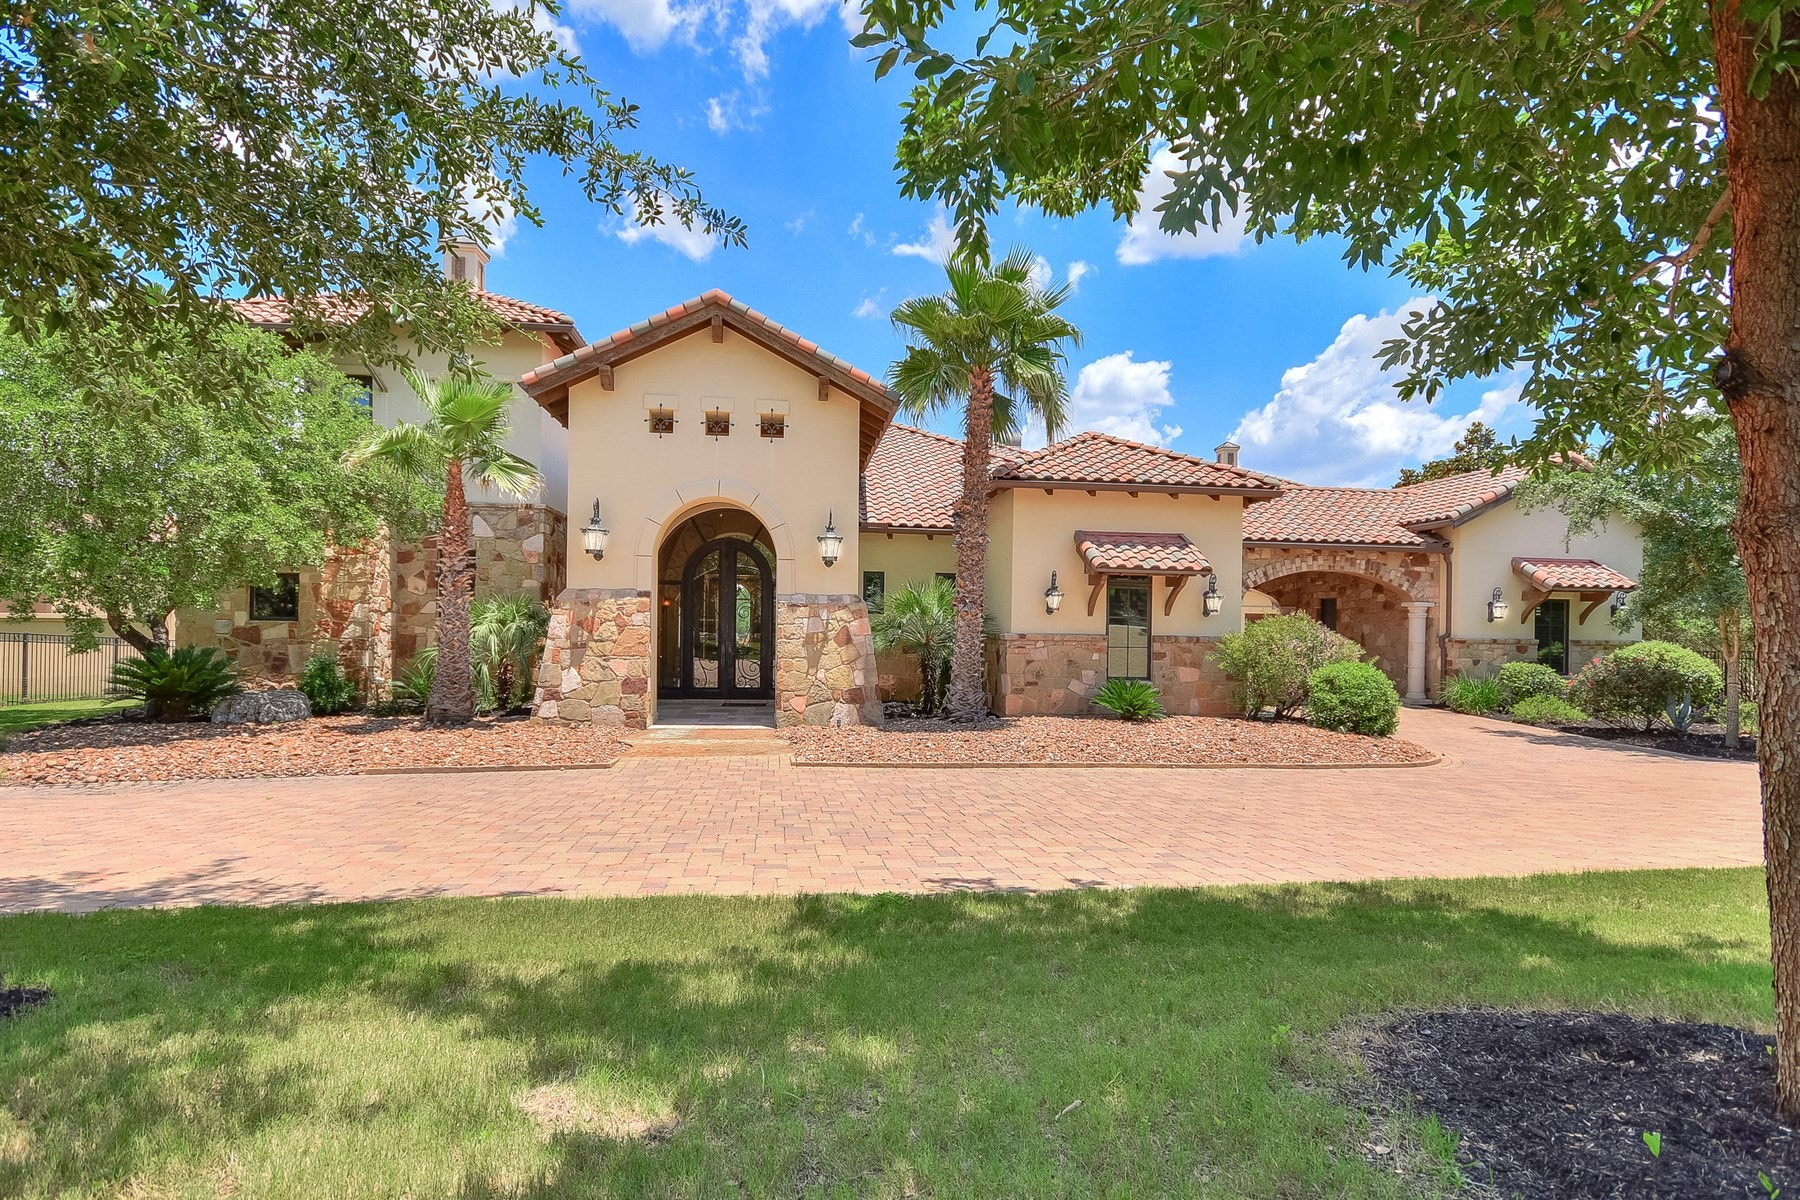 Additional photo for property listing at 9113 Camelback Dr 9113 Camelback Dr Austin, Texas 78733 United States